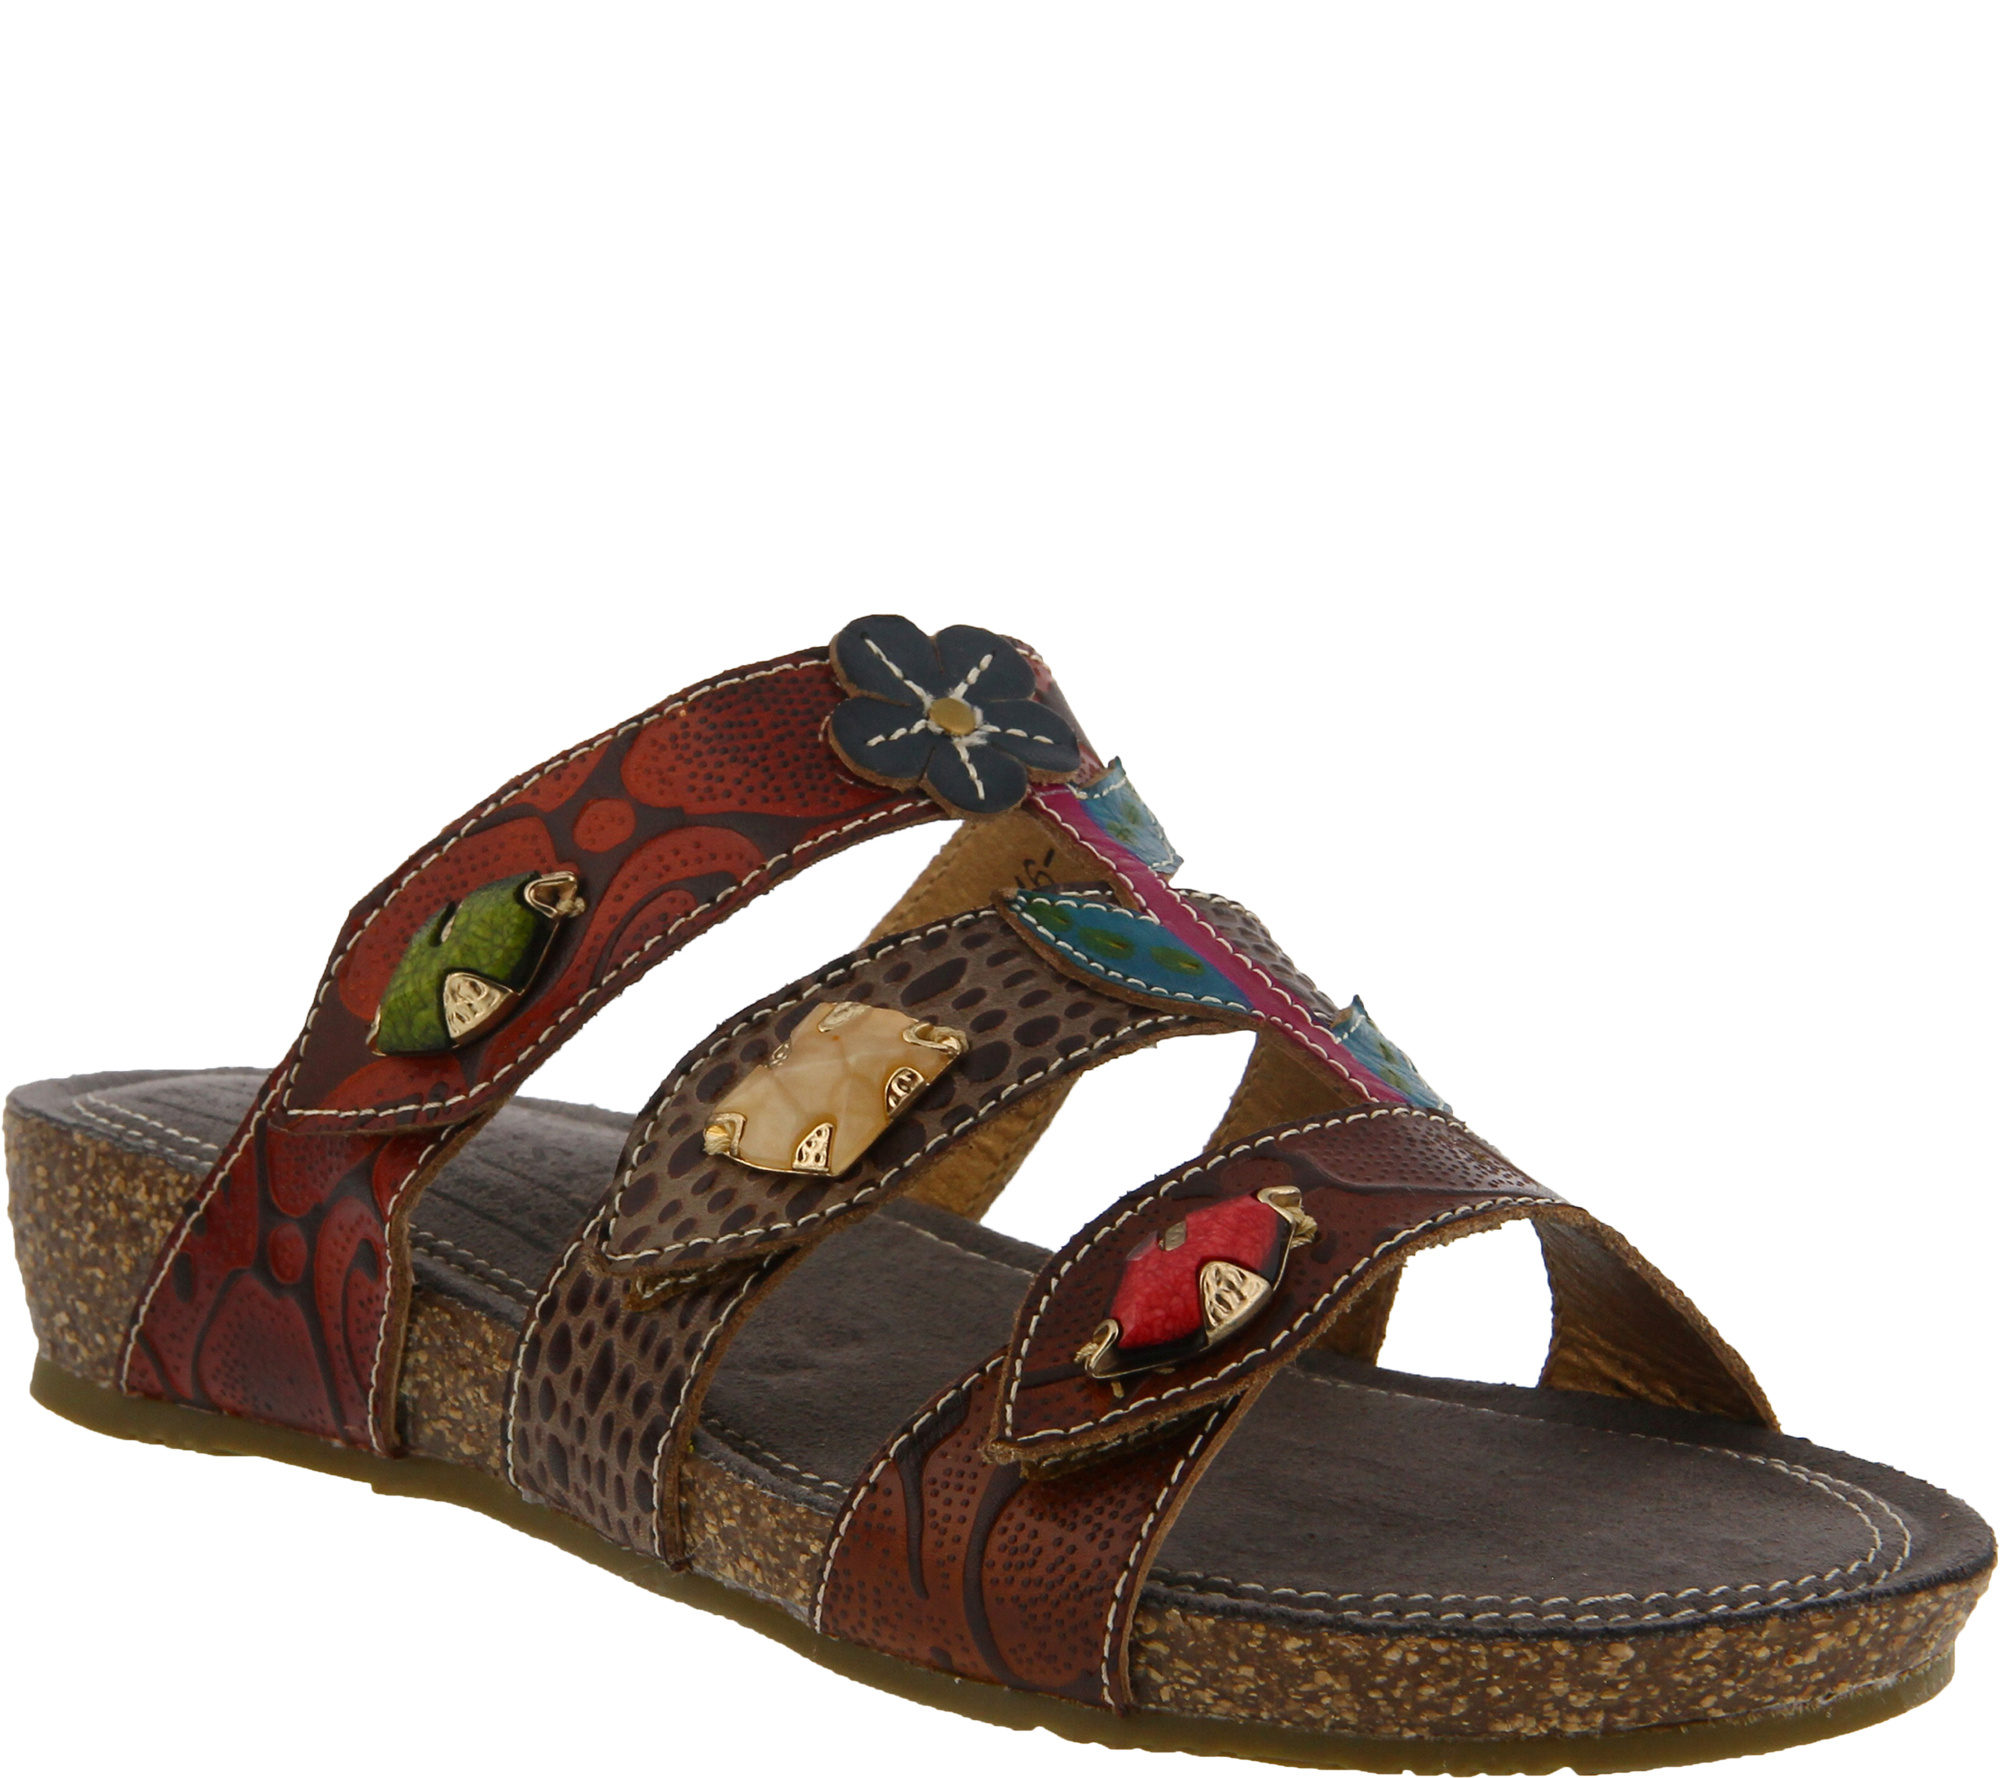 L'Artiste by Spring Step Leather Jeweled Slides - Aghna